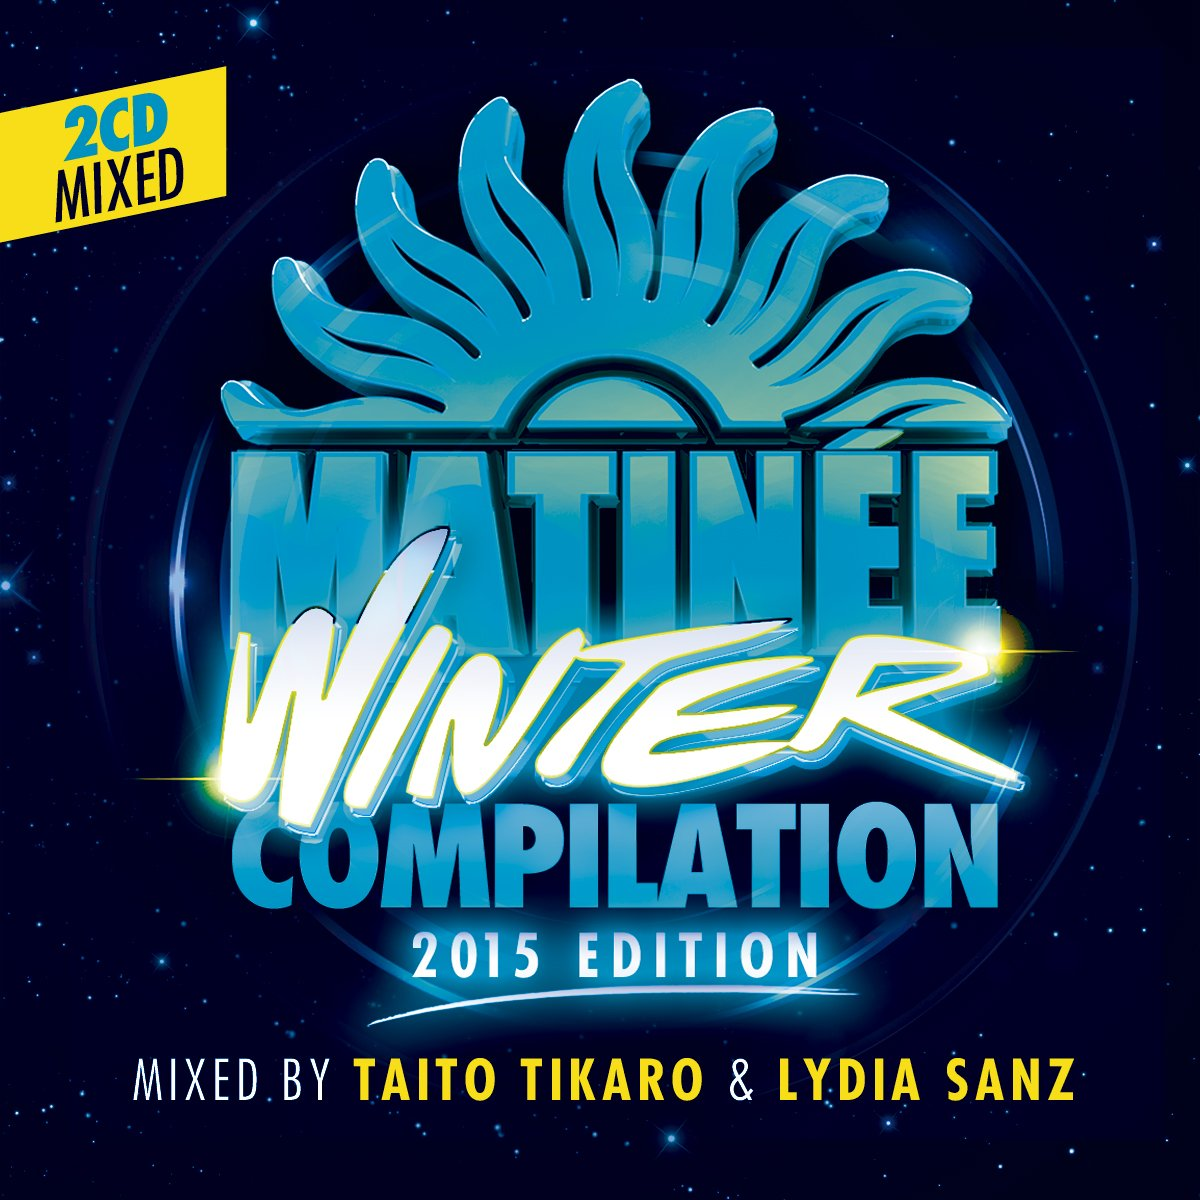 MATINÉE WINTER COMPILATION 2015 EDITION - Mixed By Taito Tikaro & Lydia Sanz